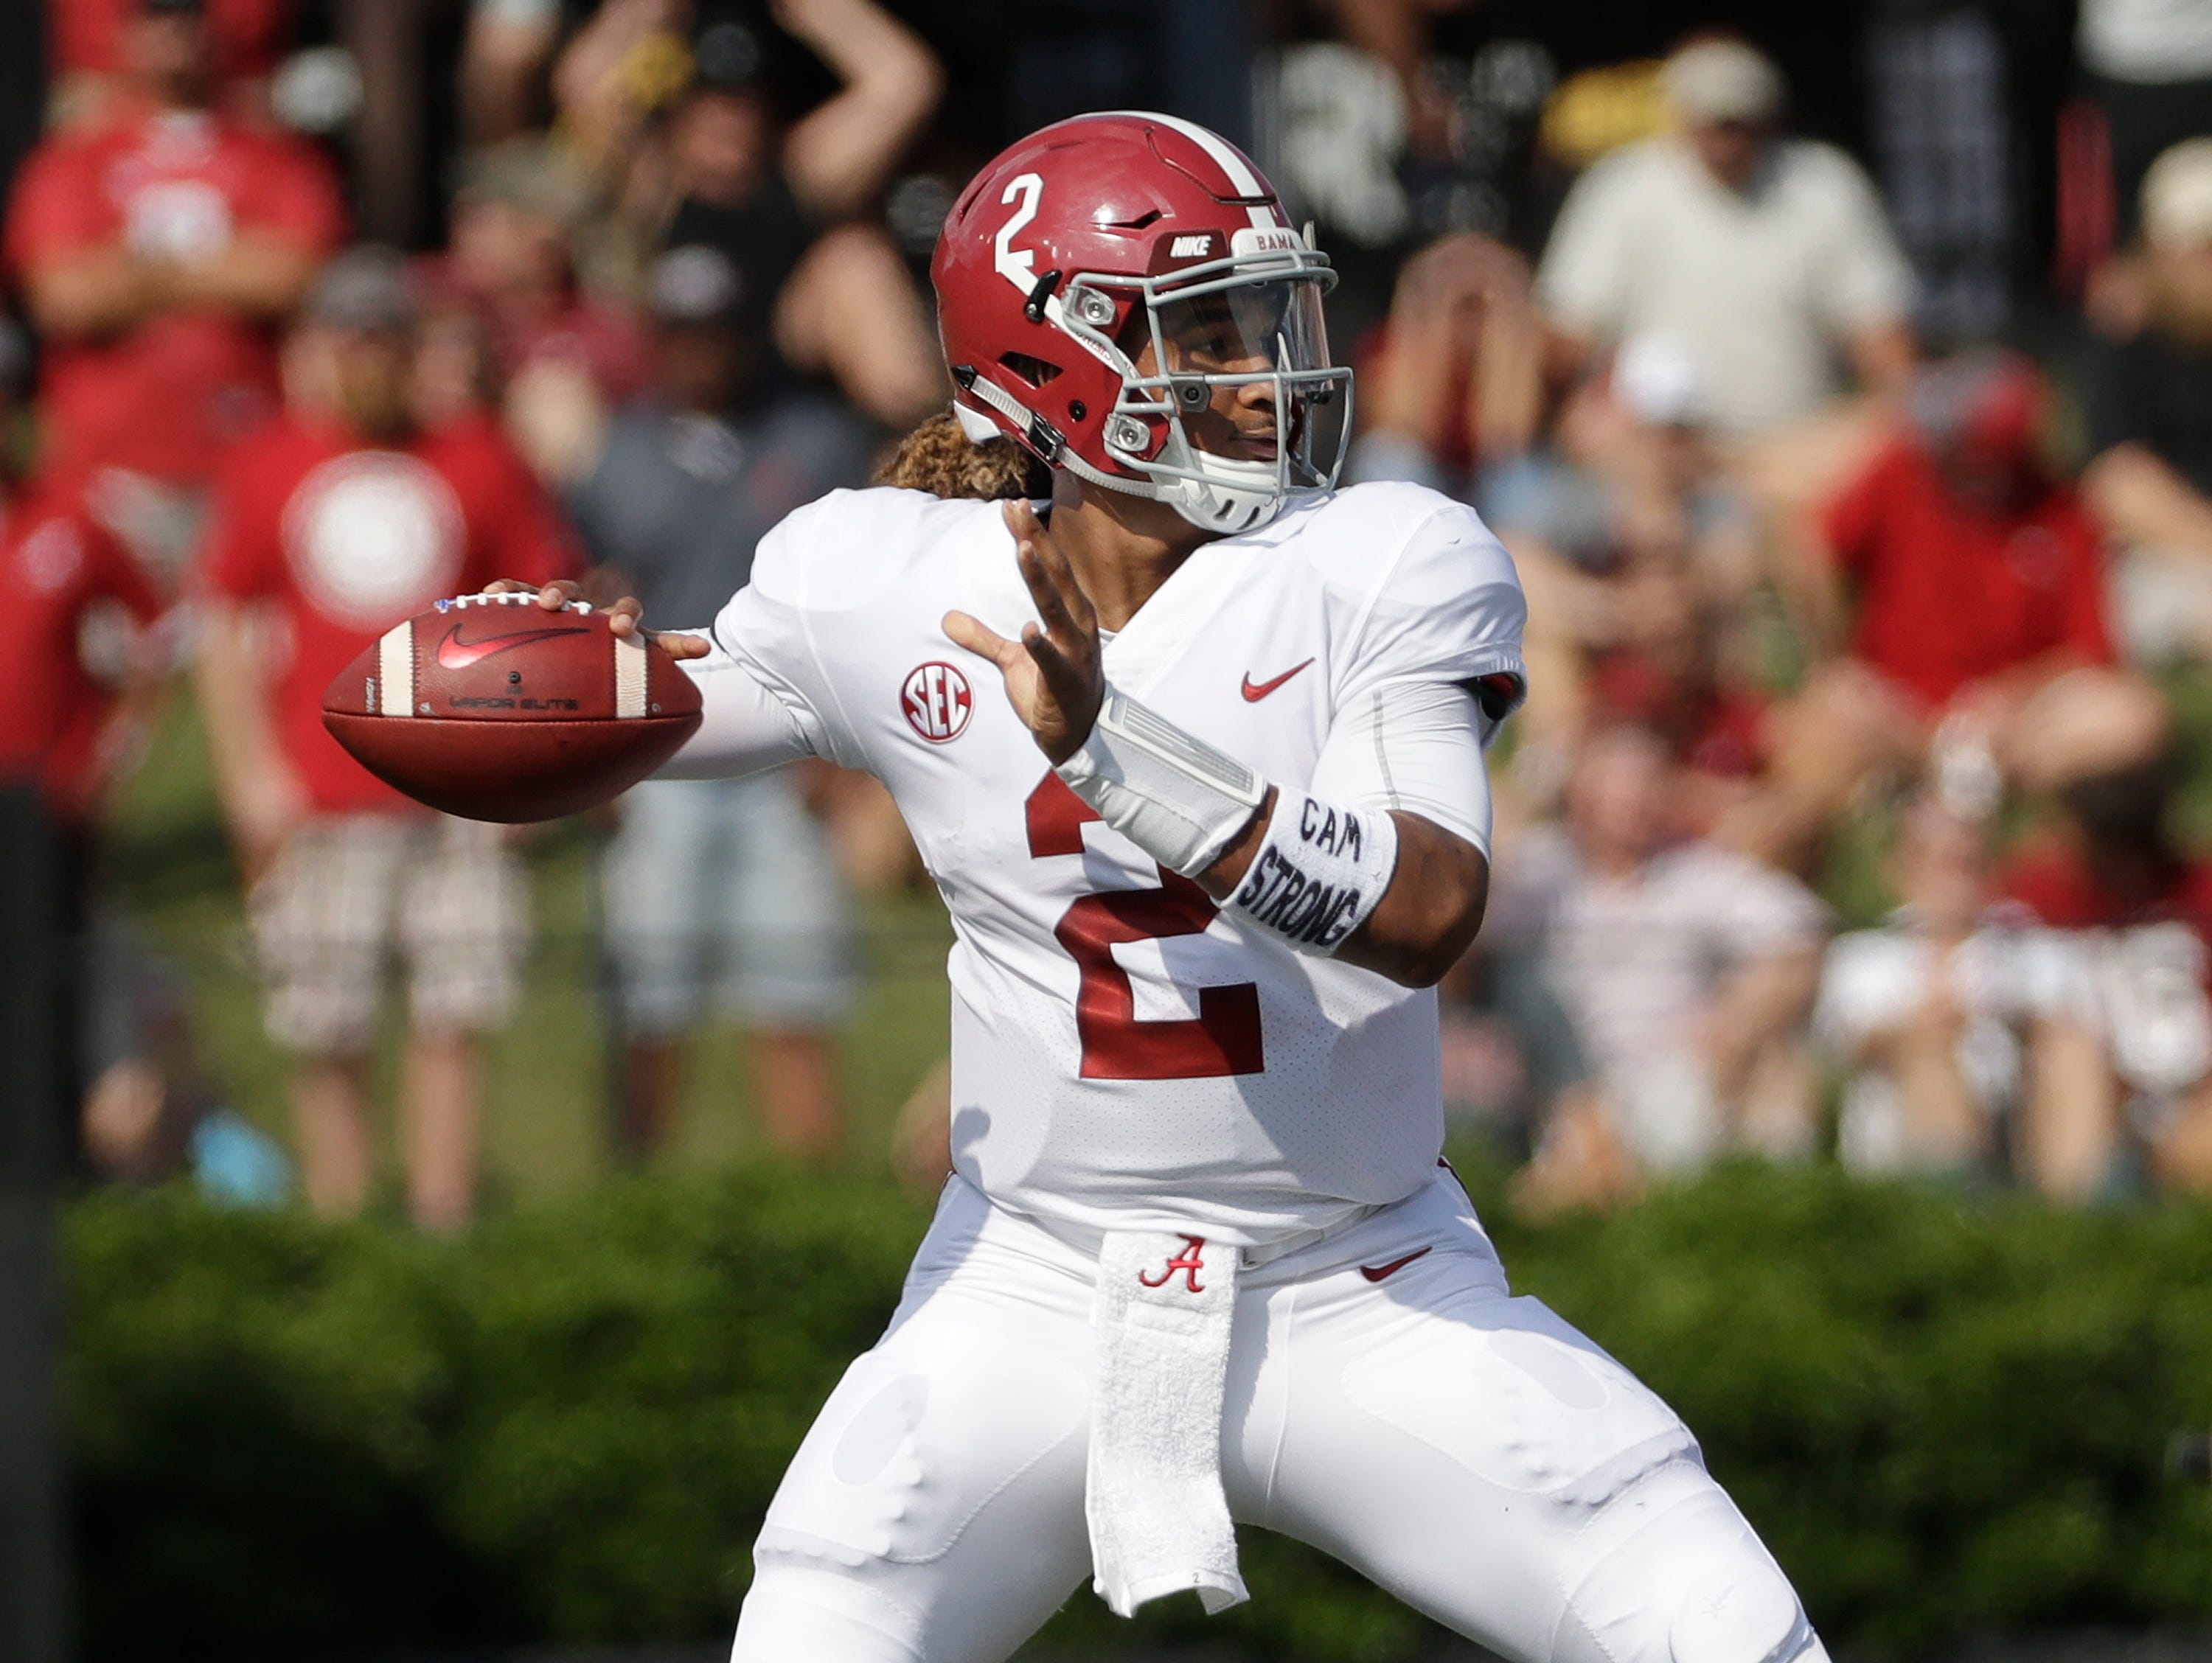 Alabama quarterback Jalen Hurts (2) passes against Vanderbilt.